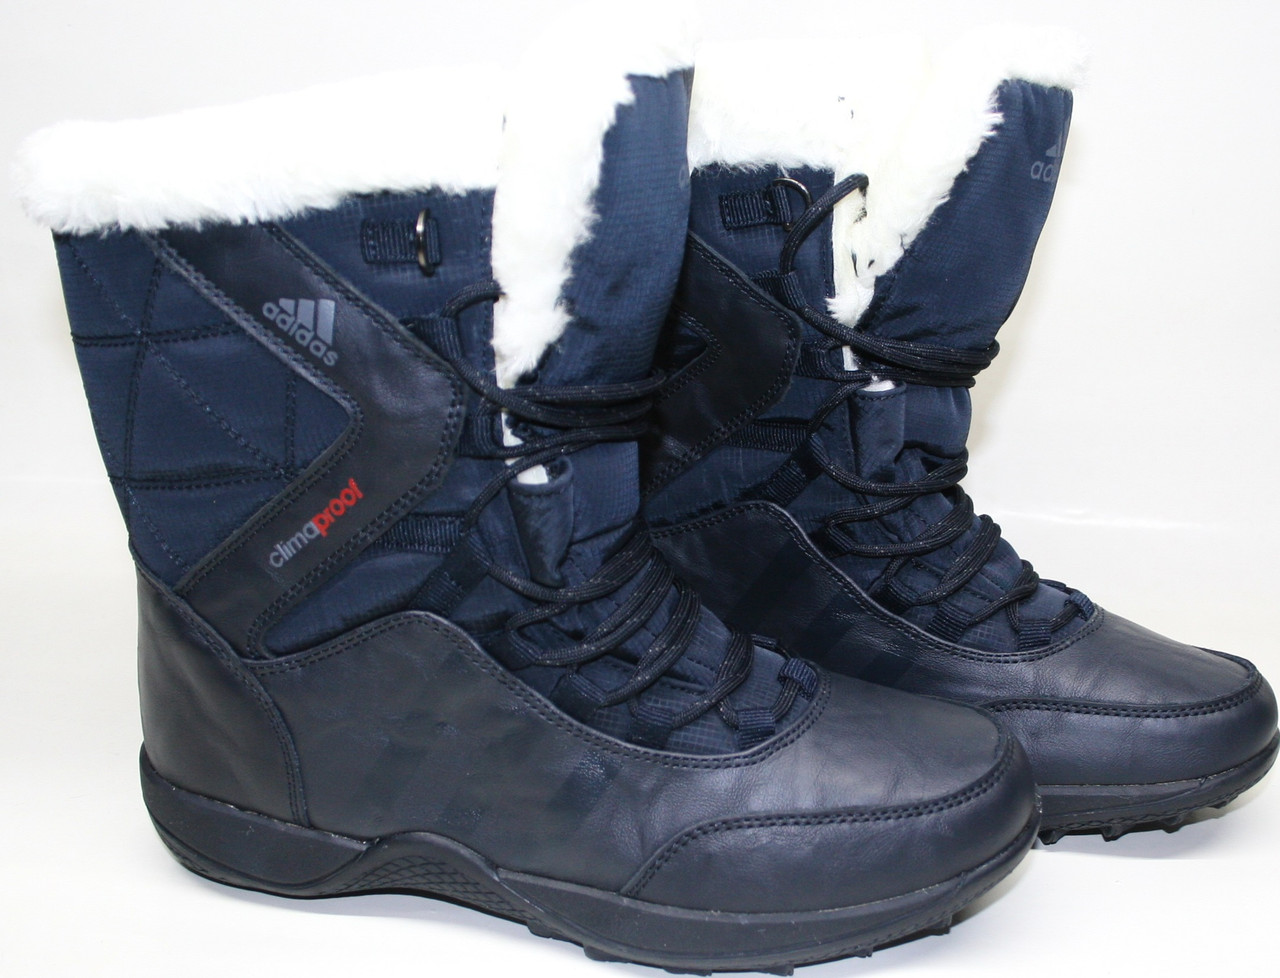 ef97803e Ботинки кроссовки winter boots adidas climaproof Navy - Dark Gray. -  Интернет-магазин